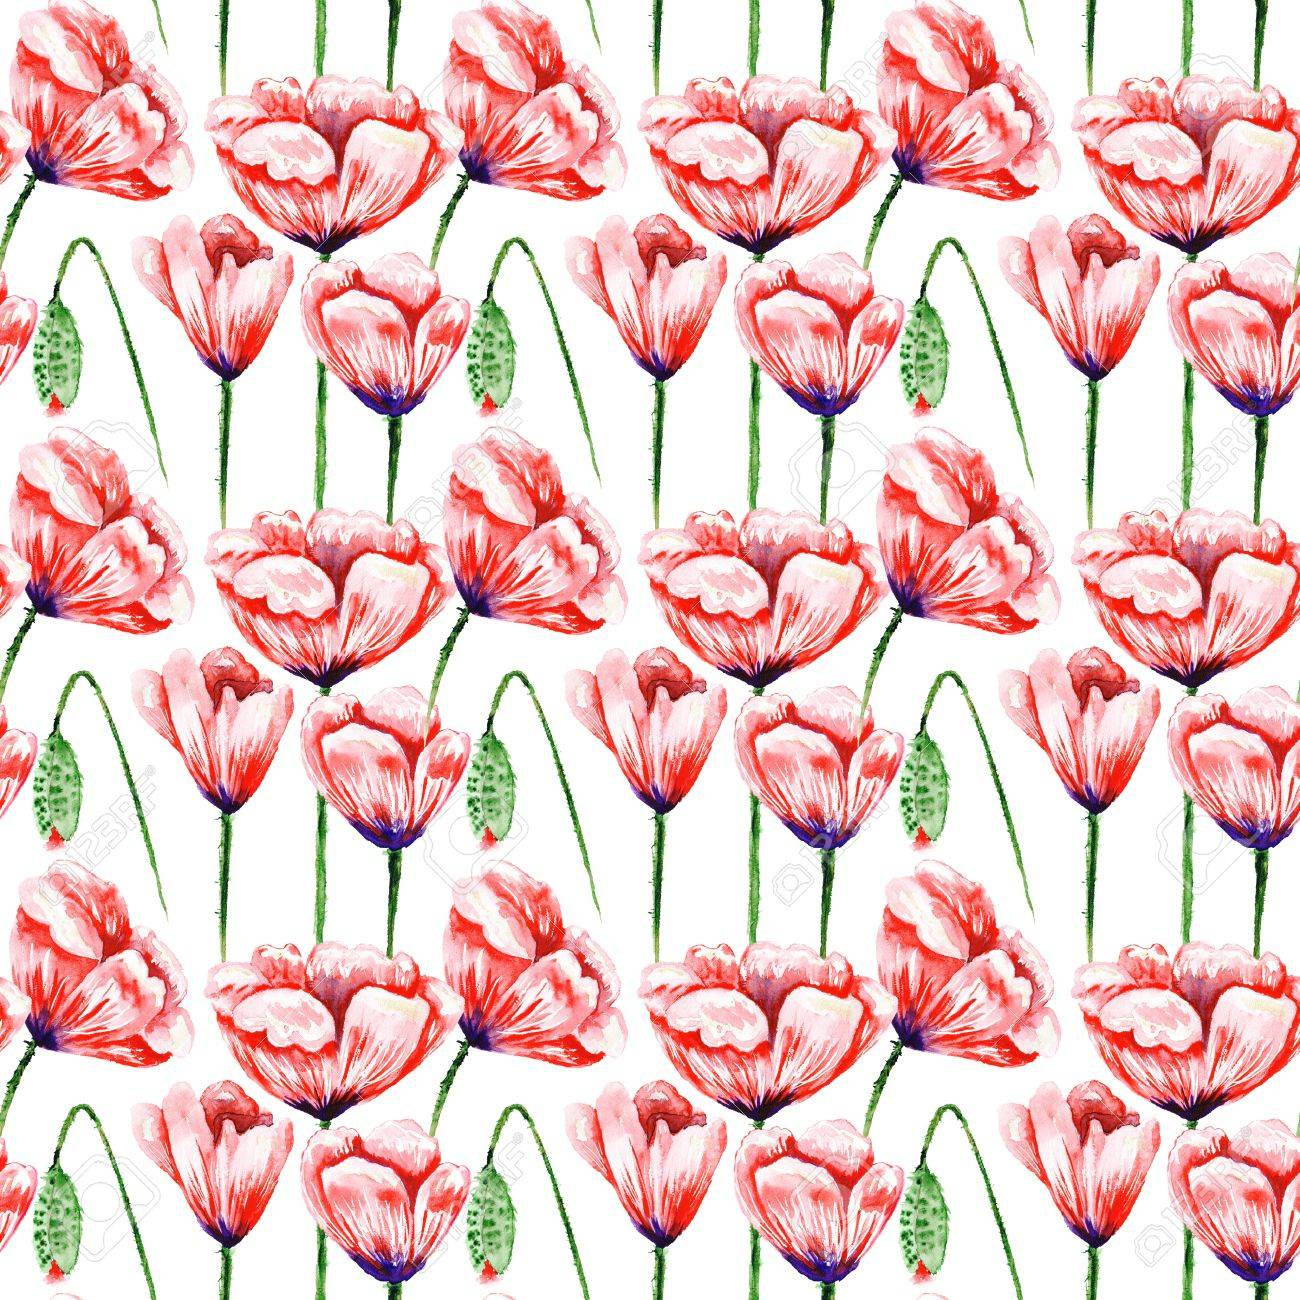 Seamless Watercolor Texture With Red Flowers Isolated On White